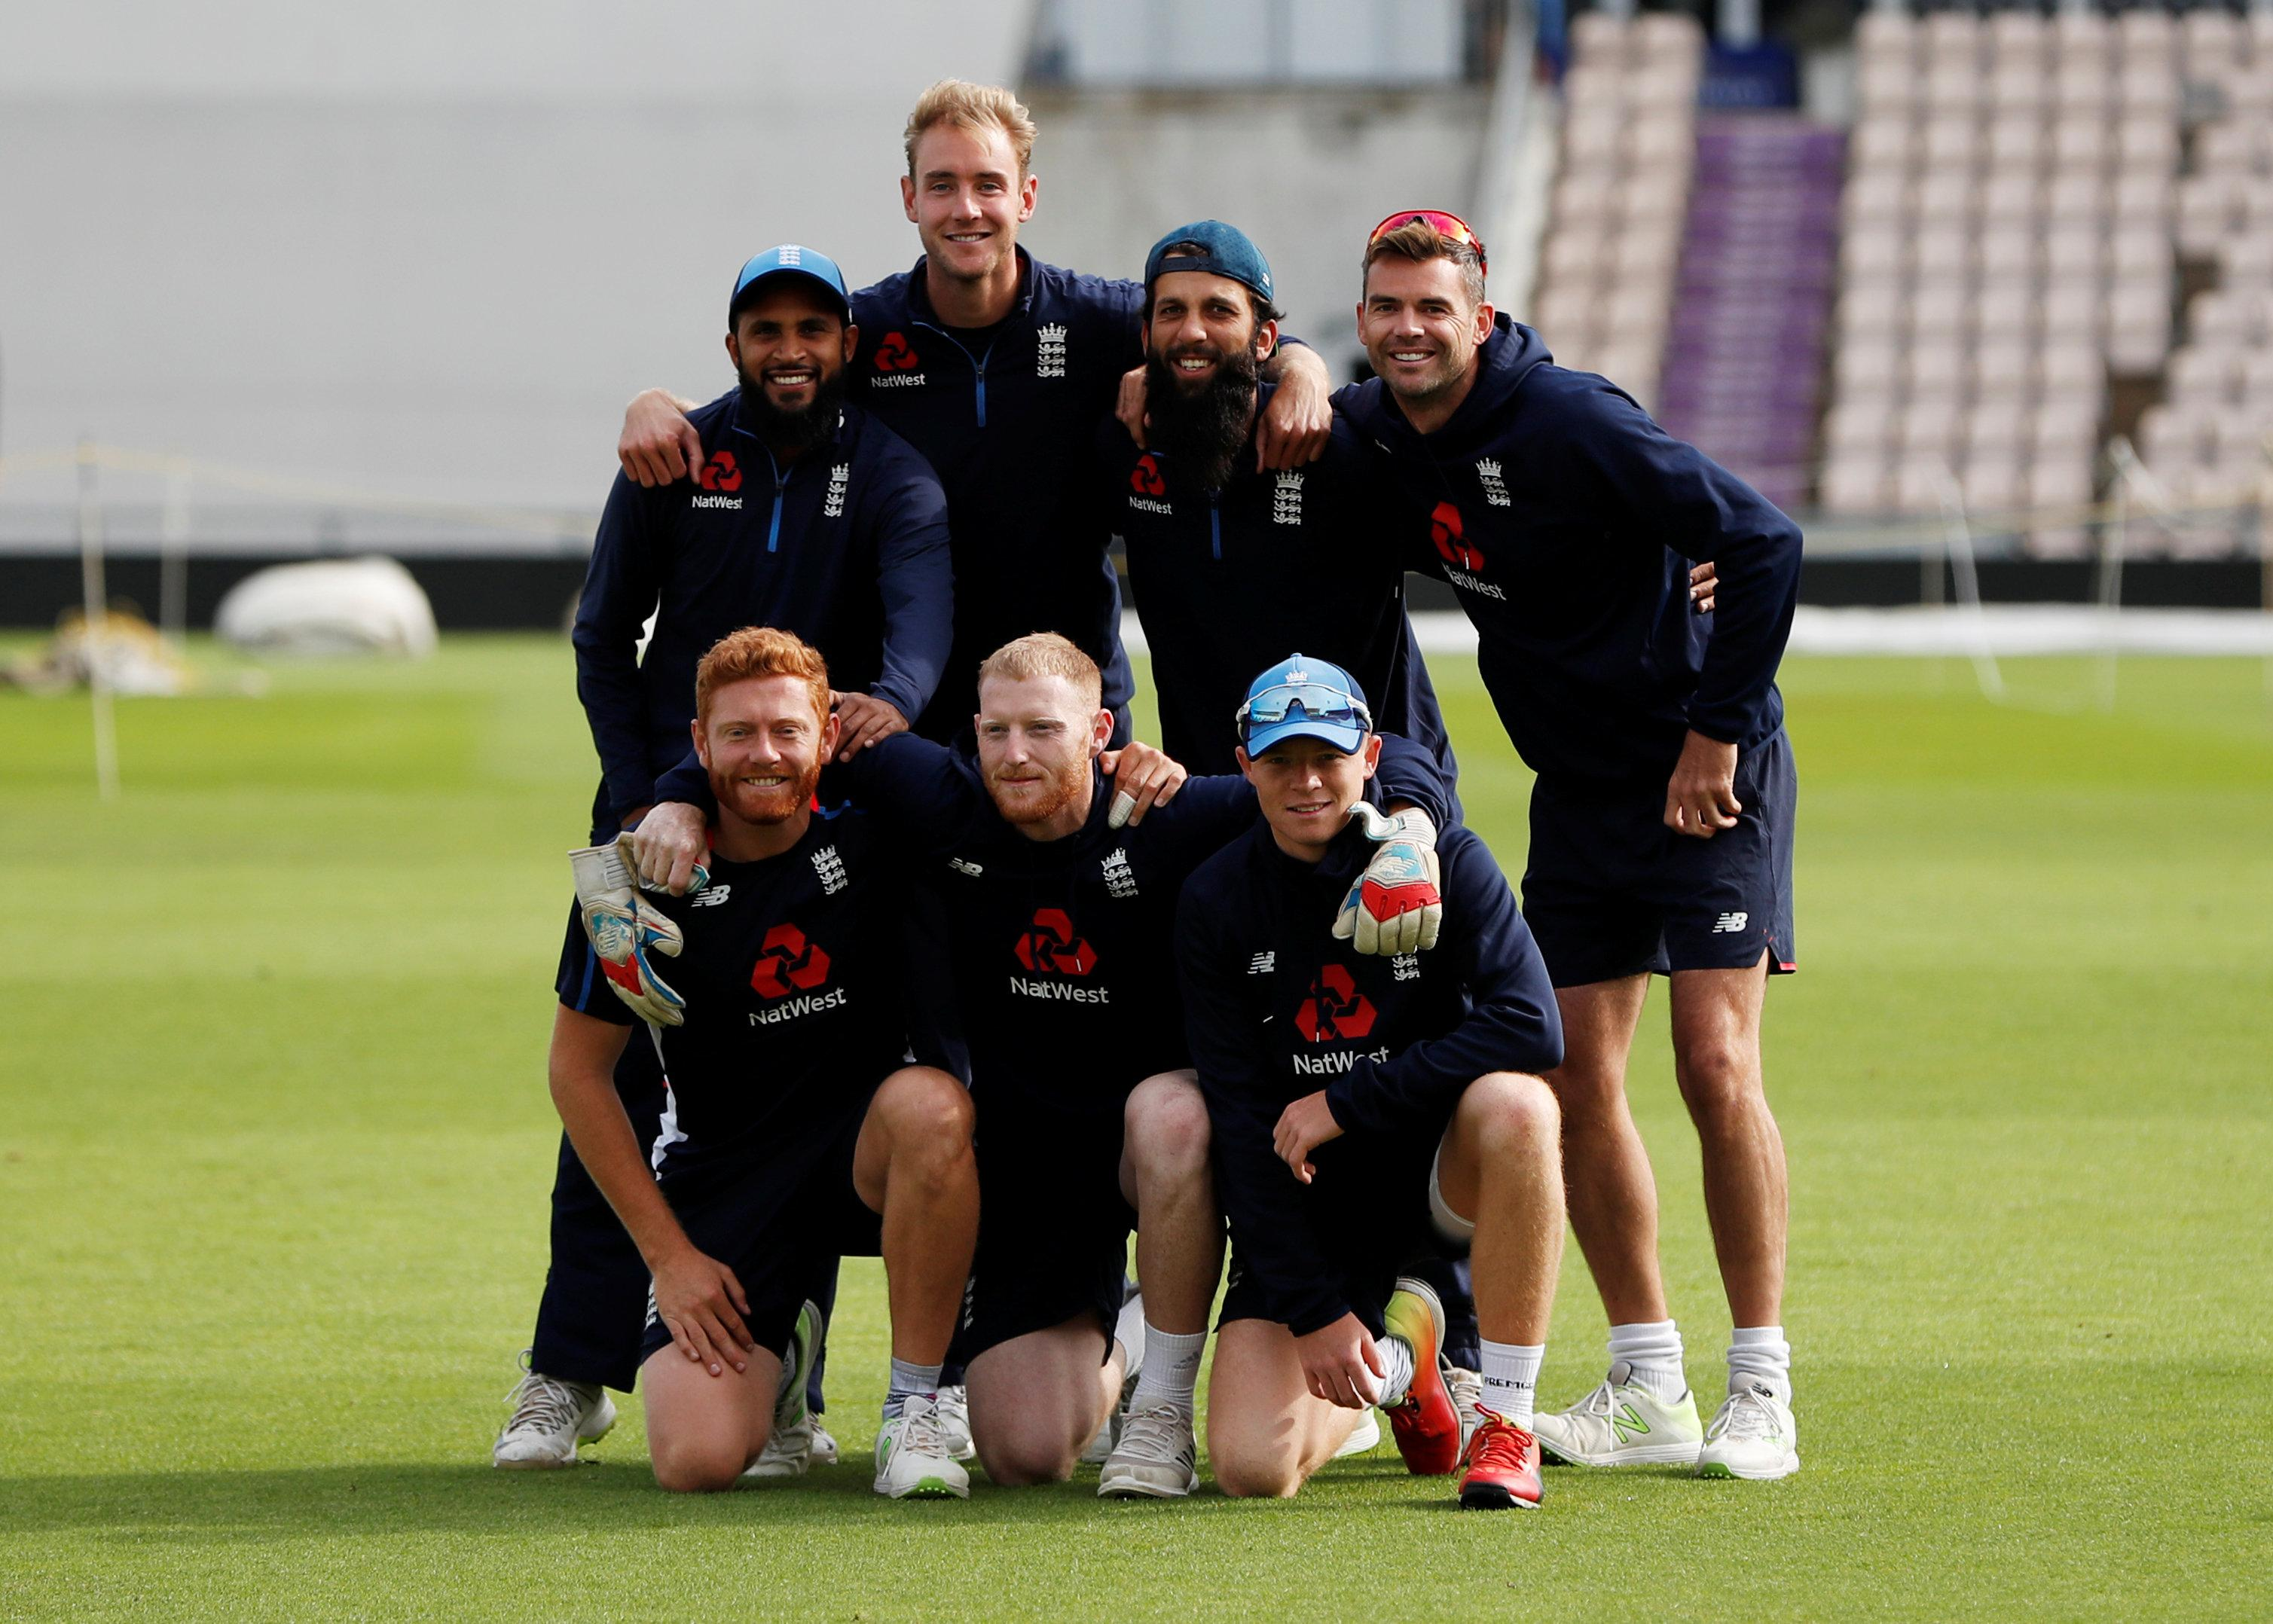 James Anderson will line-up with his team-mates at the Ageas Bowl this weekend